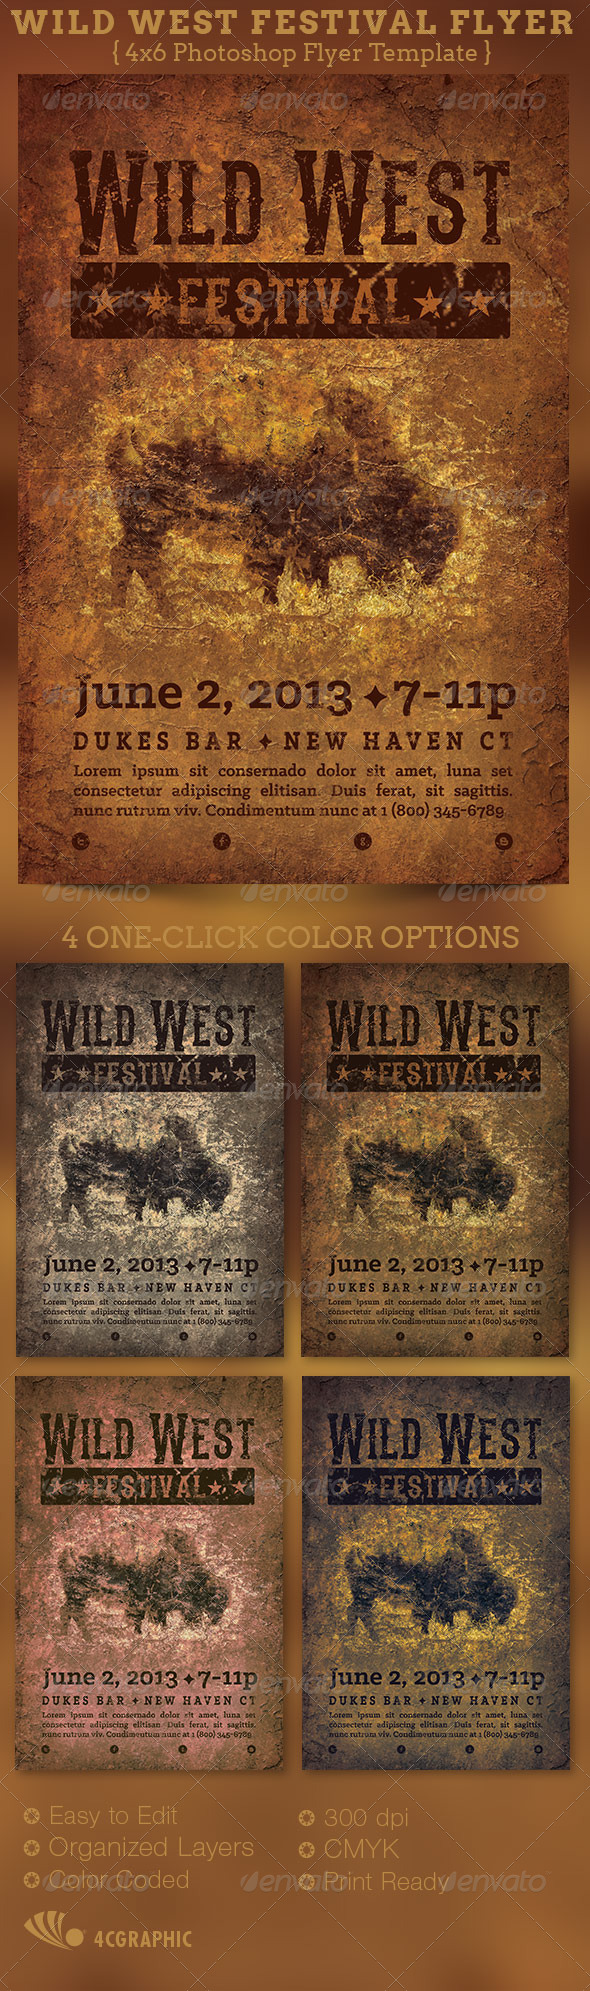 Wild West Festival Flyer Template - Events Flyers